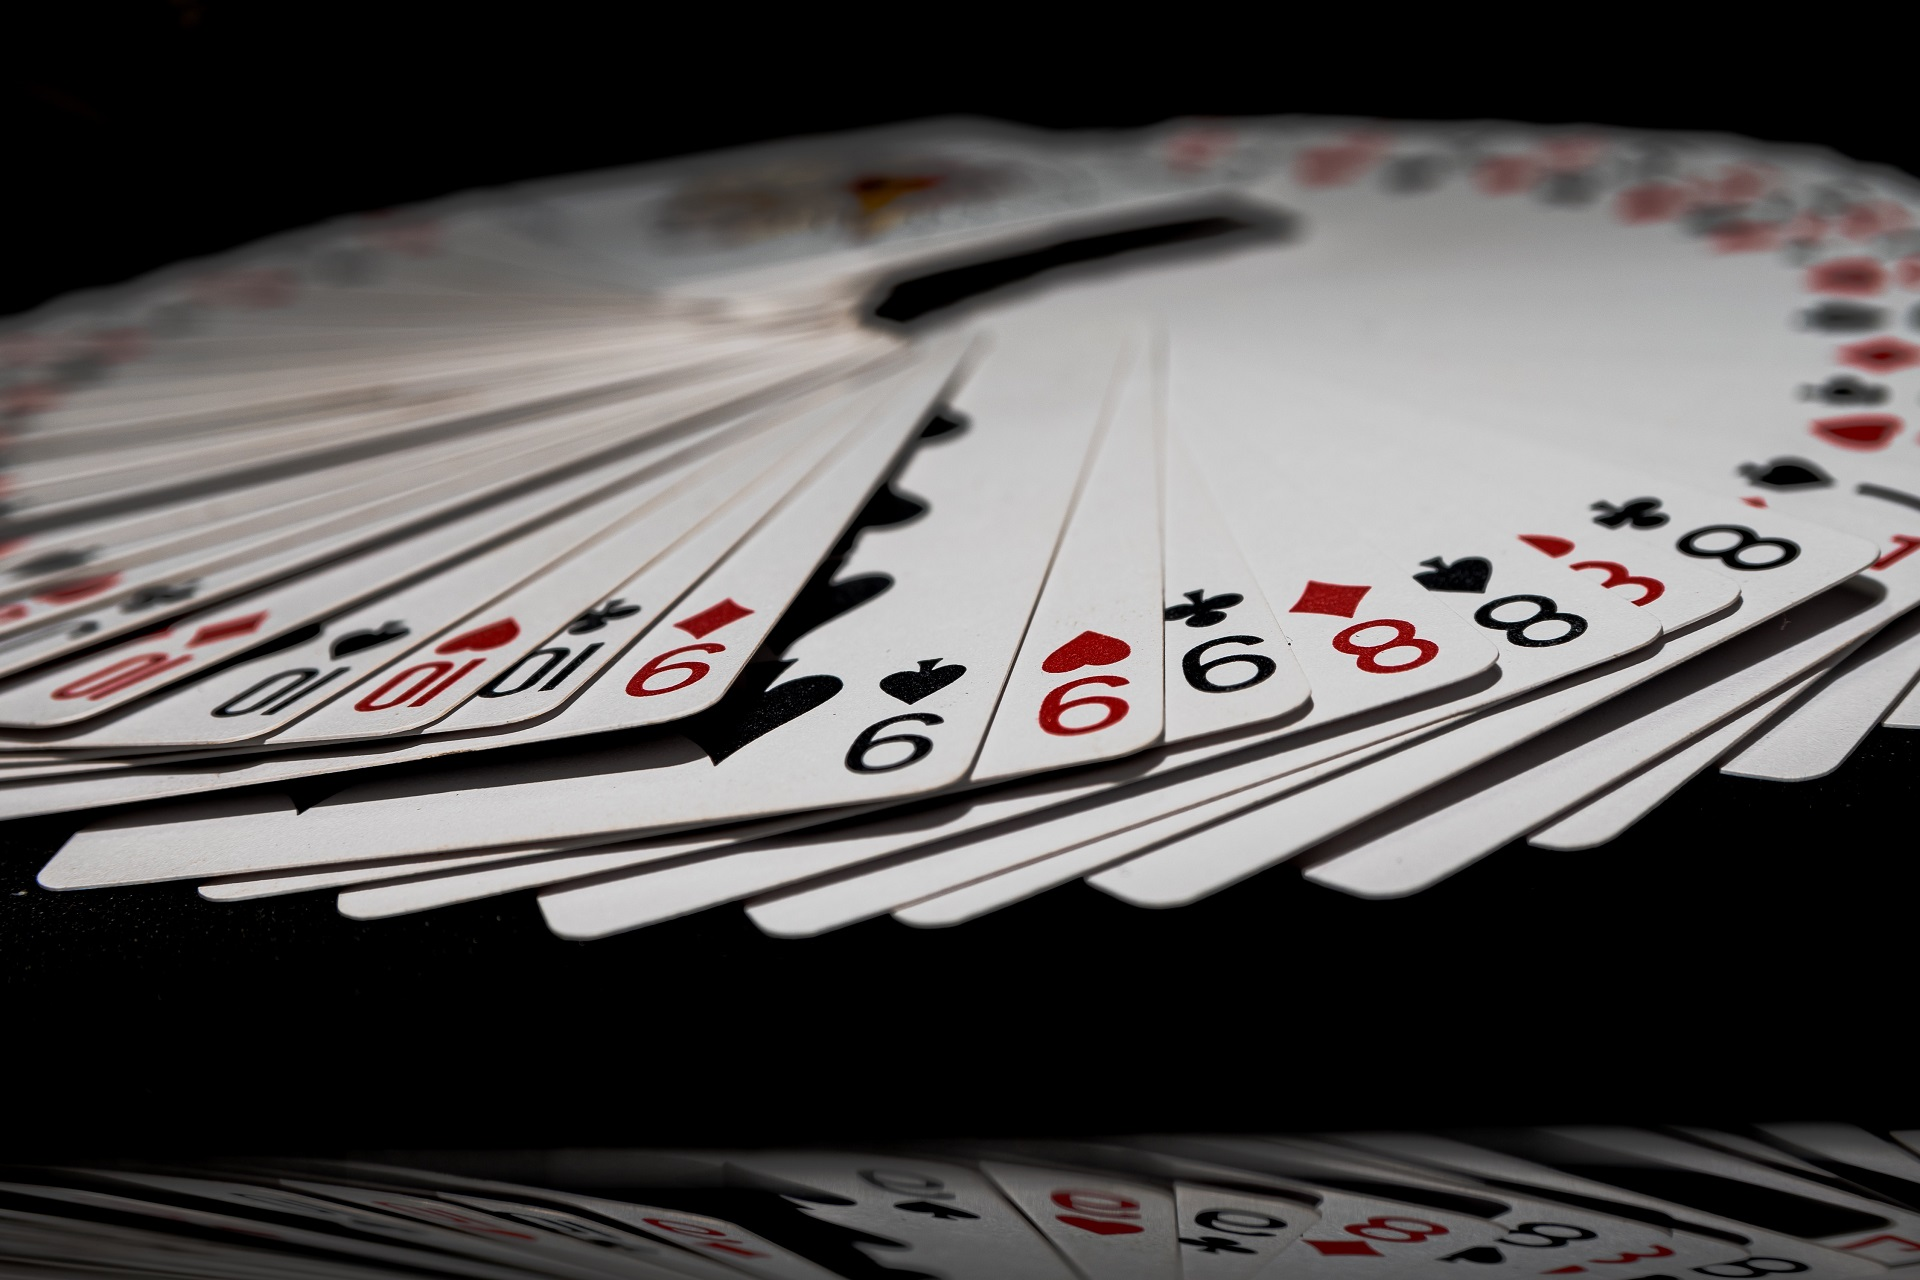 Skill Guide 101: All You Need To Know About Card Counting In Blackjack